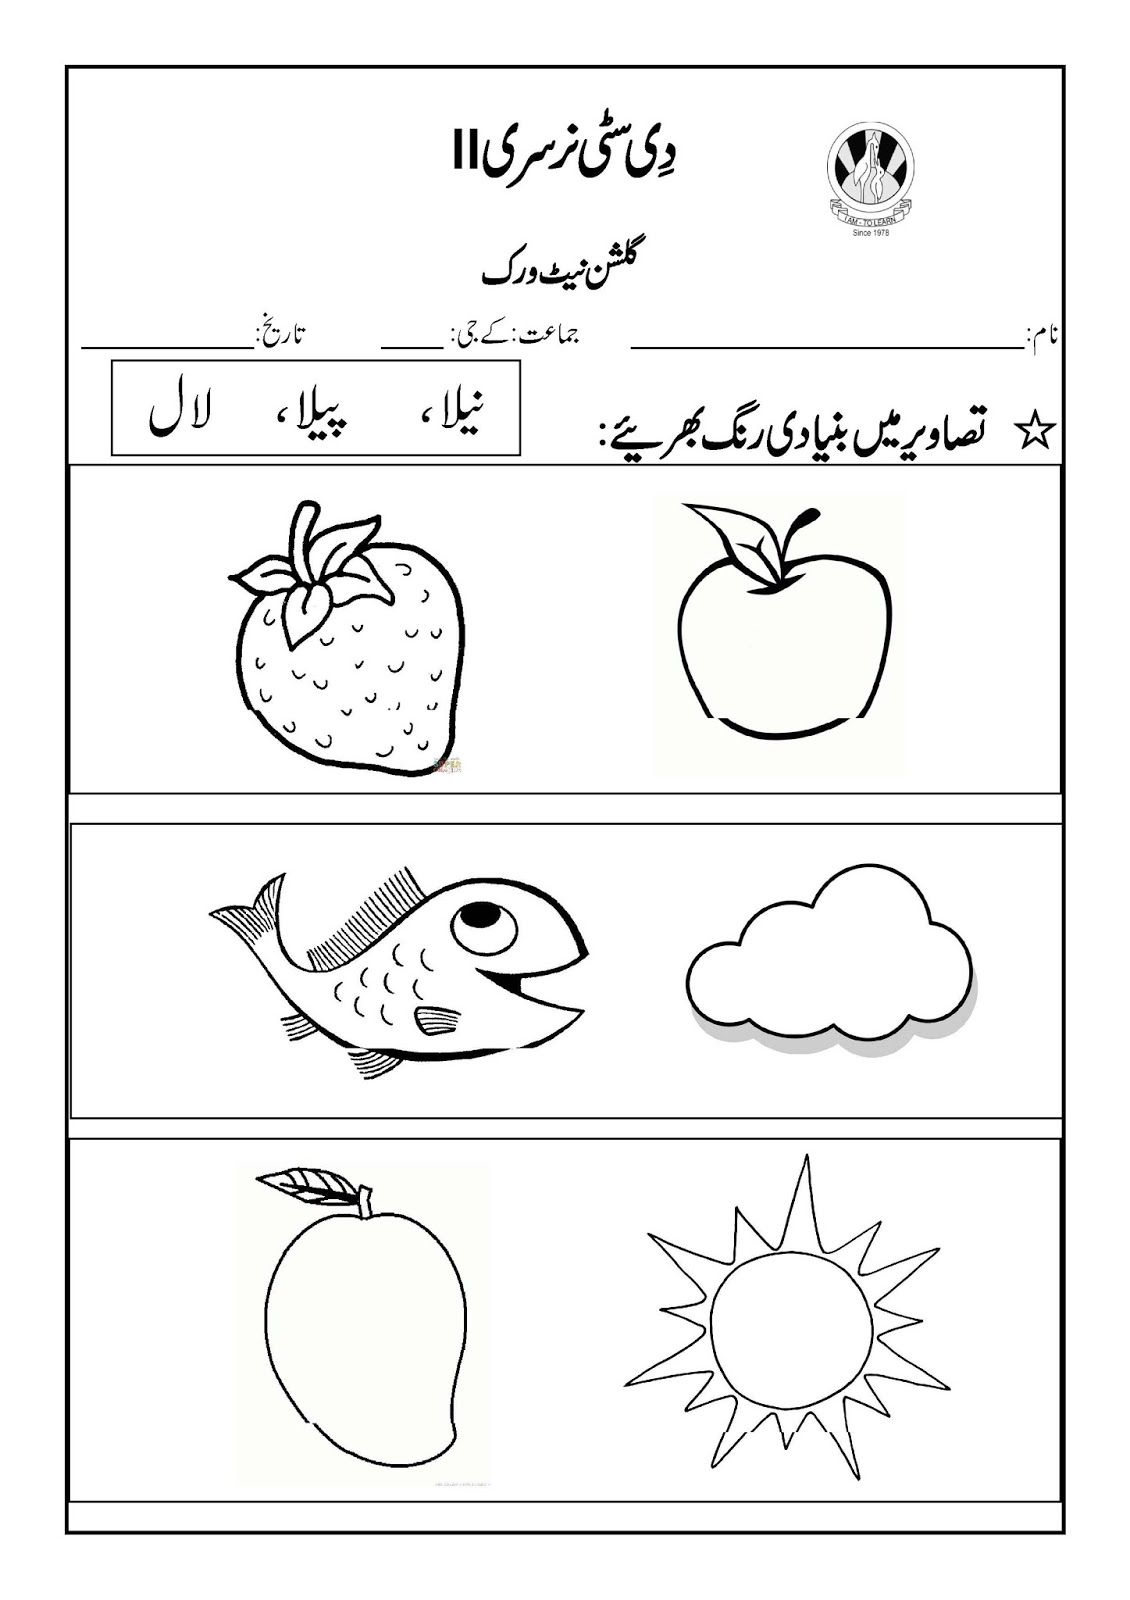 Image Result For Urdu Worksheets For Nursery